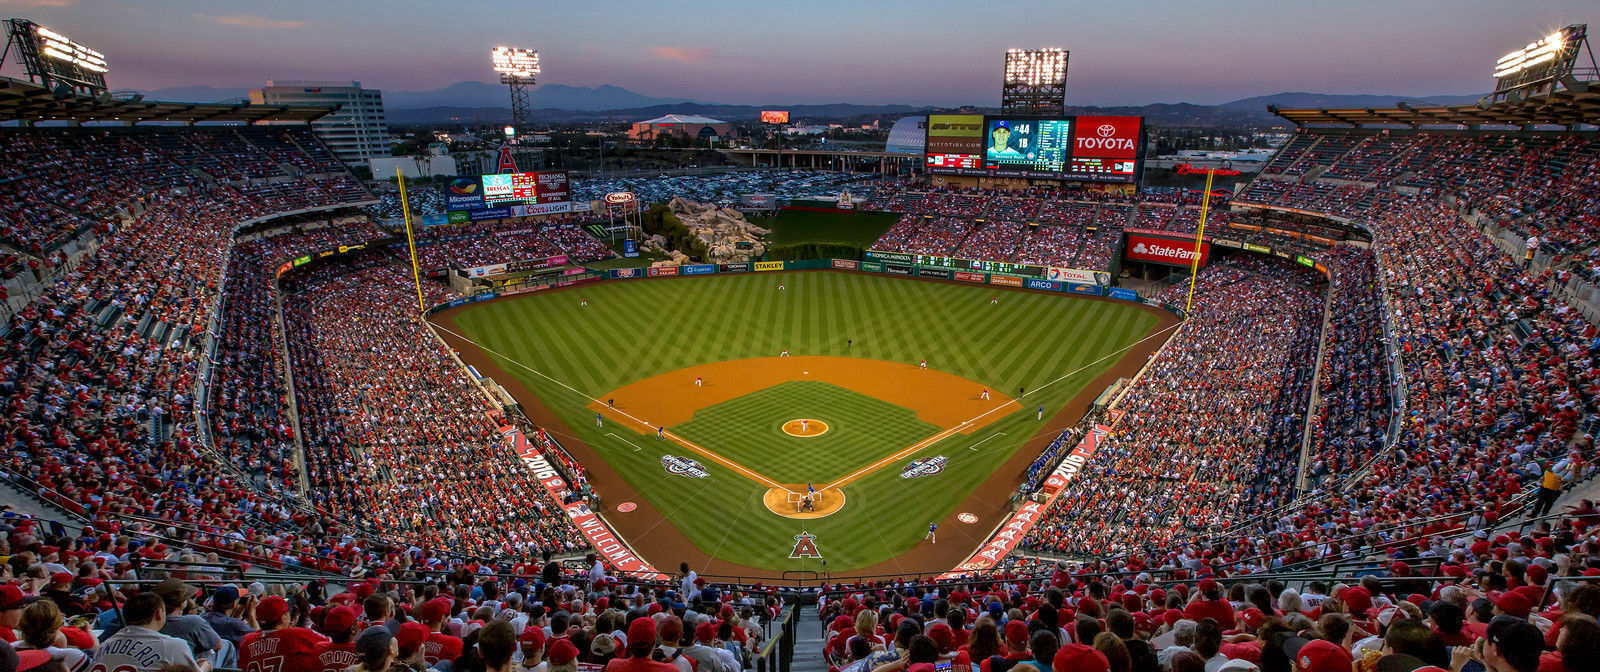 Los Angeles Angels Opening Day